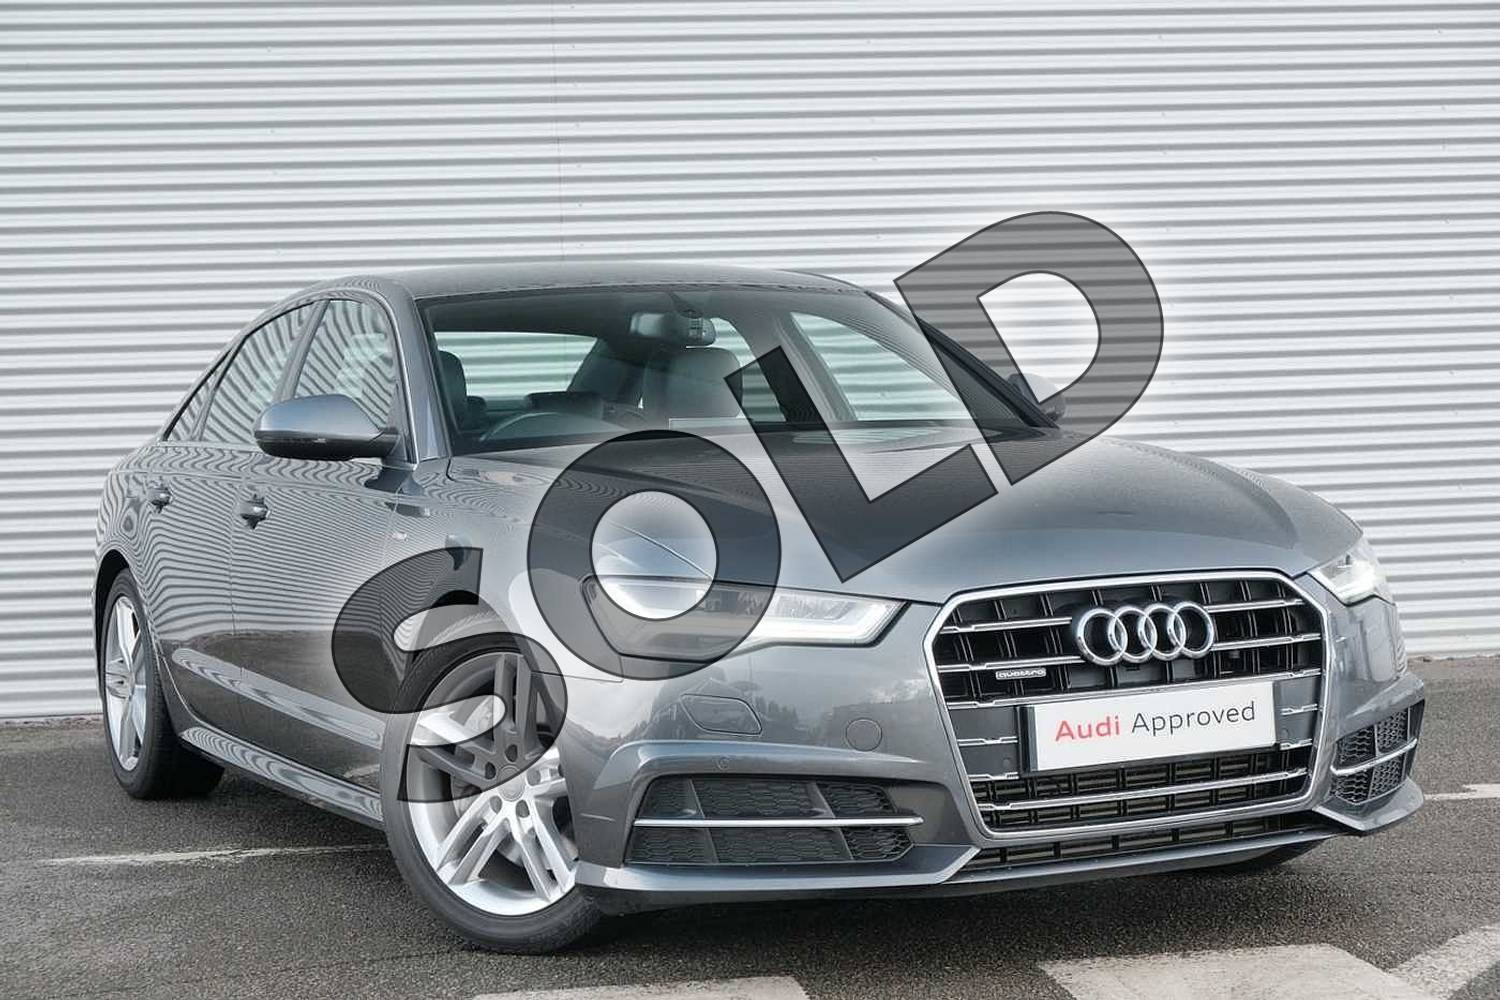 2017 Audi A6 Diesel Saloon 3.0 TDI (272) Quattro S Line 4dr S Tronic in Daytona Grey Pearlescent at Coventry Audi